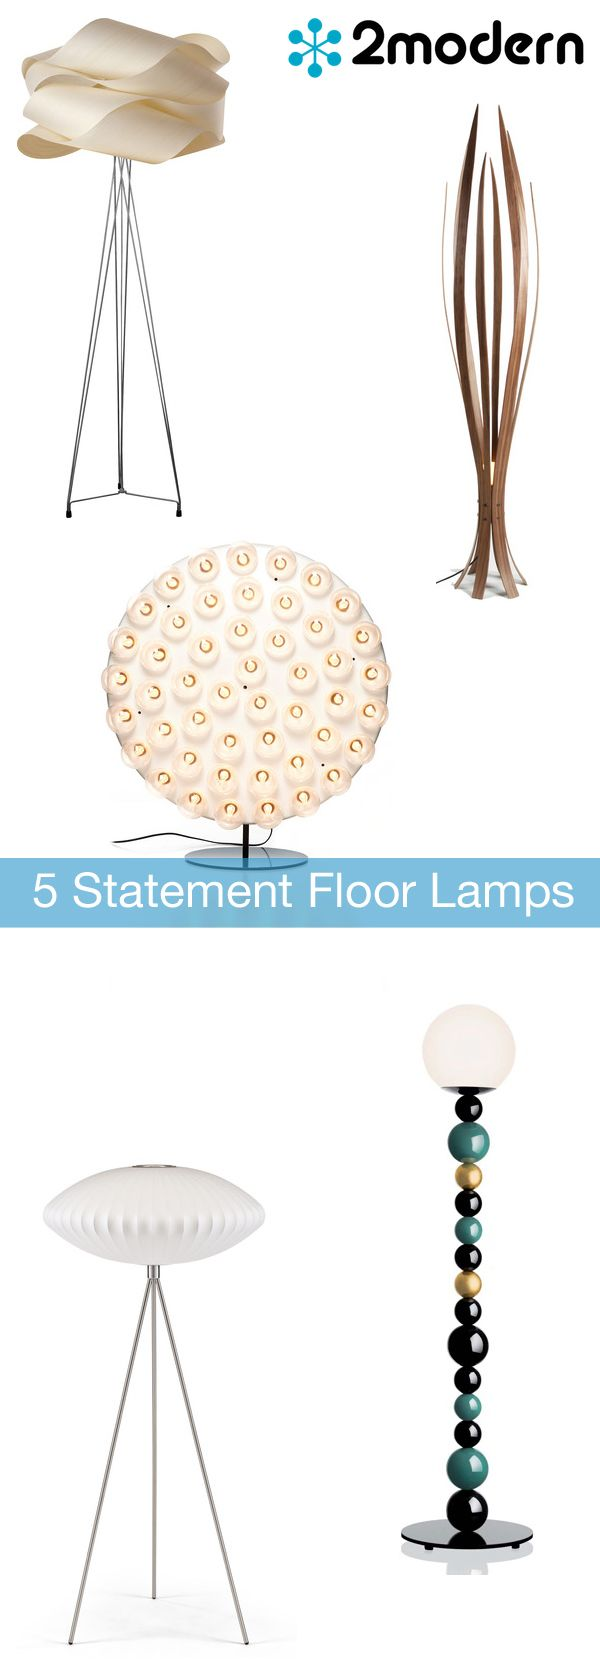 providing nuanced at night these dazzling modern floor lamps are major design statements even